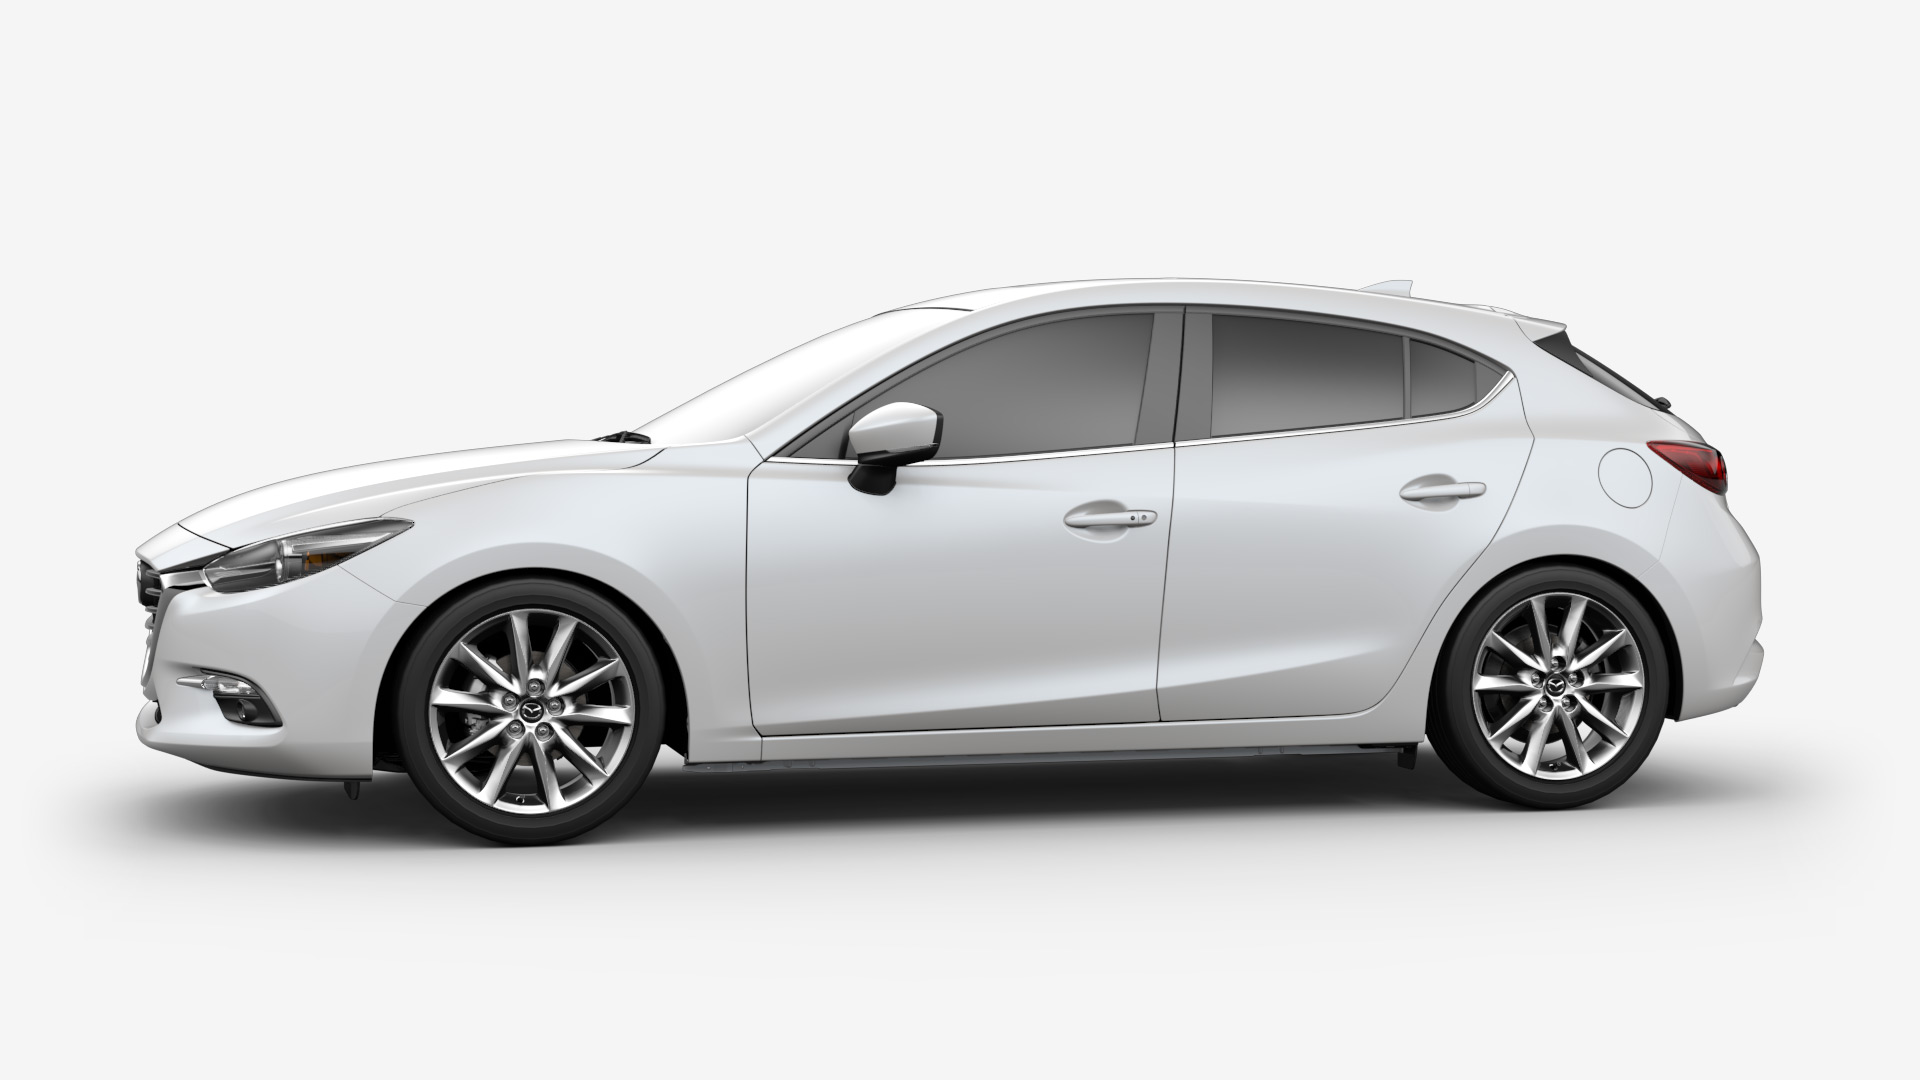 Mazda 3 Owners Manual: Fuel Economy Monitor